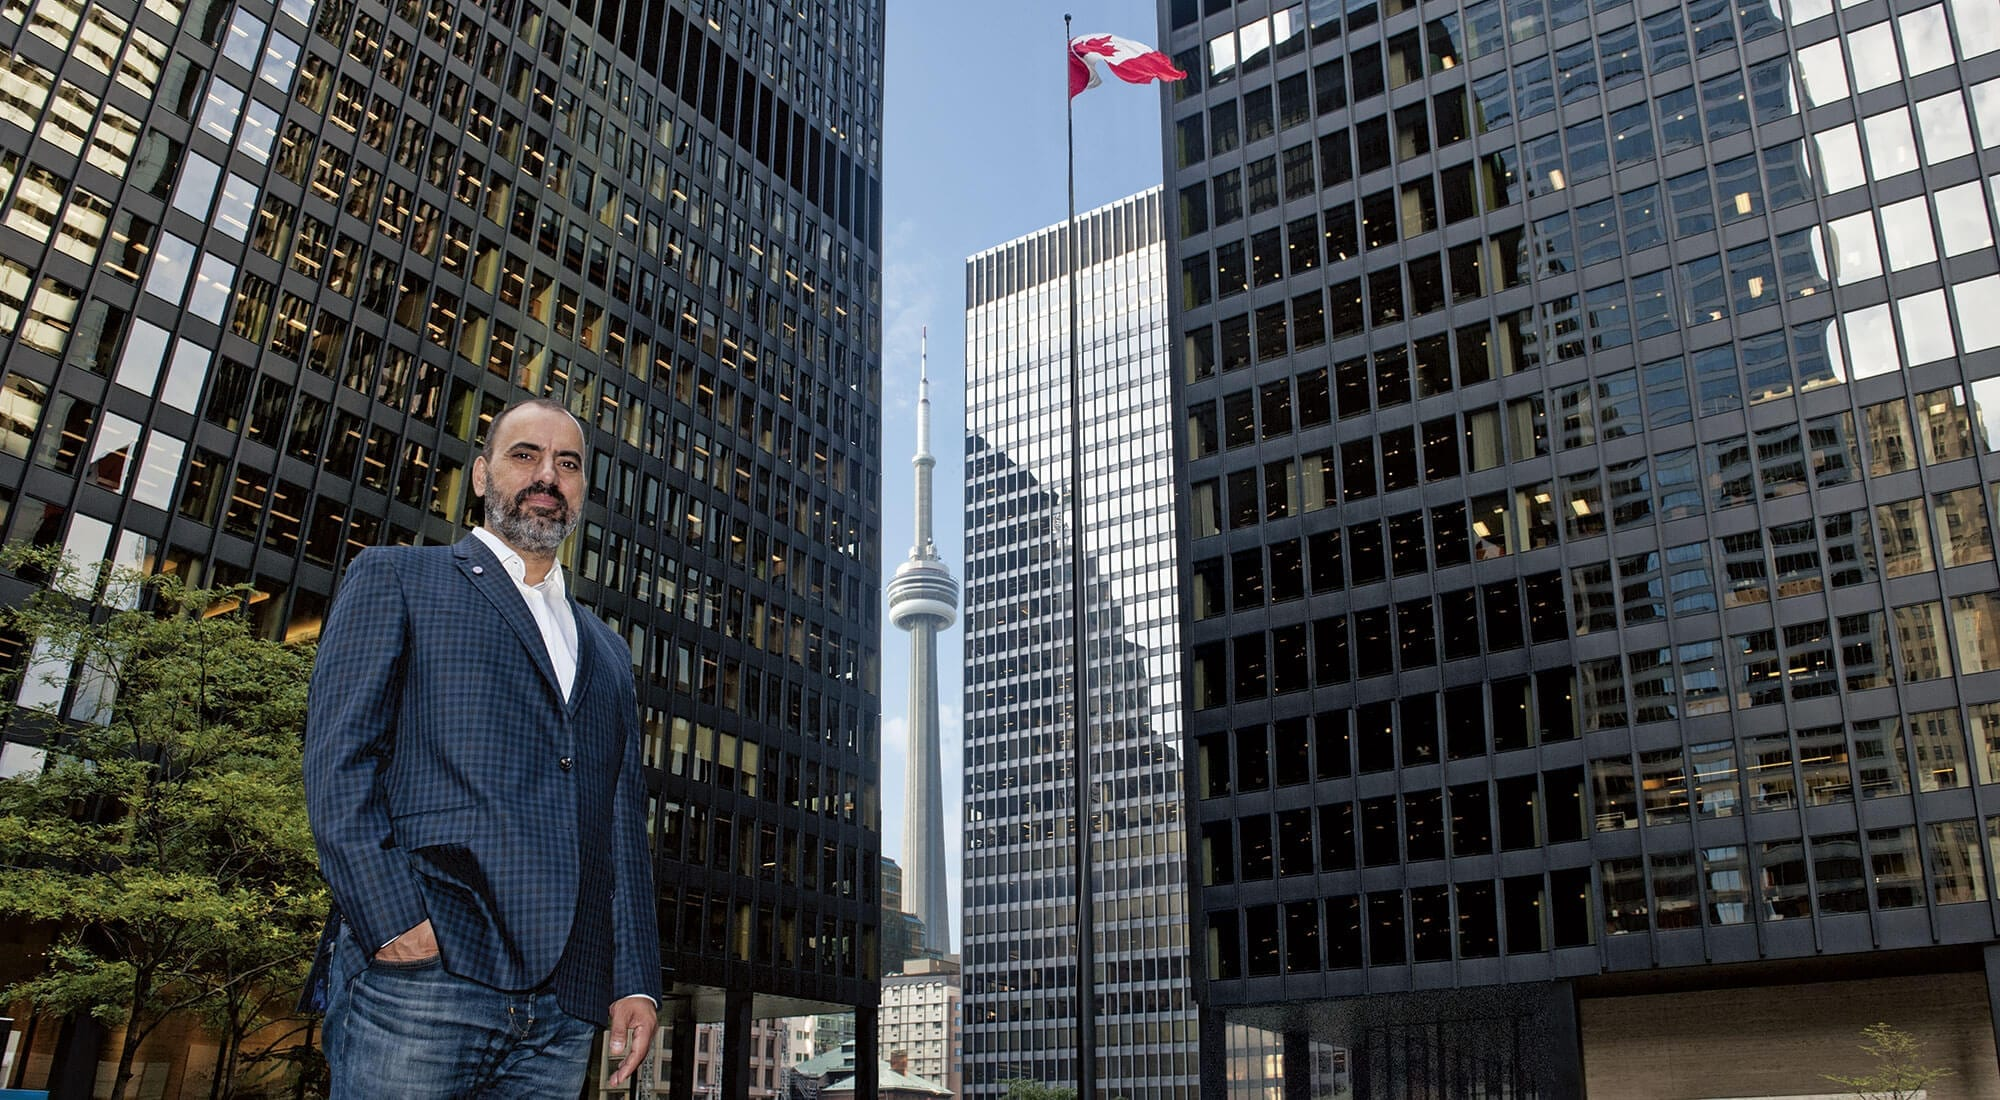 Destination T.O.: Why Toronto is attracting top tech talent